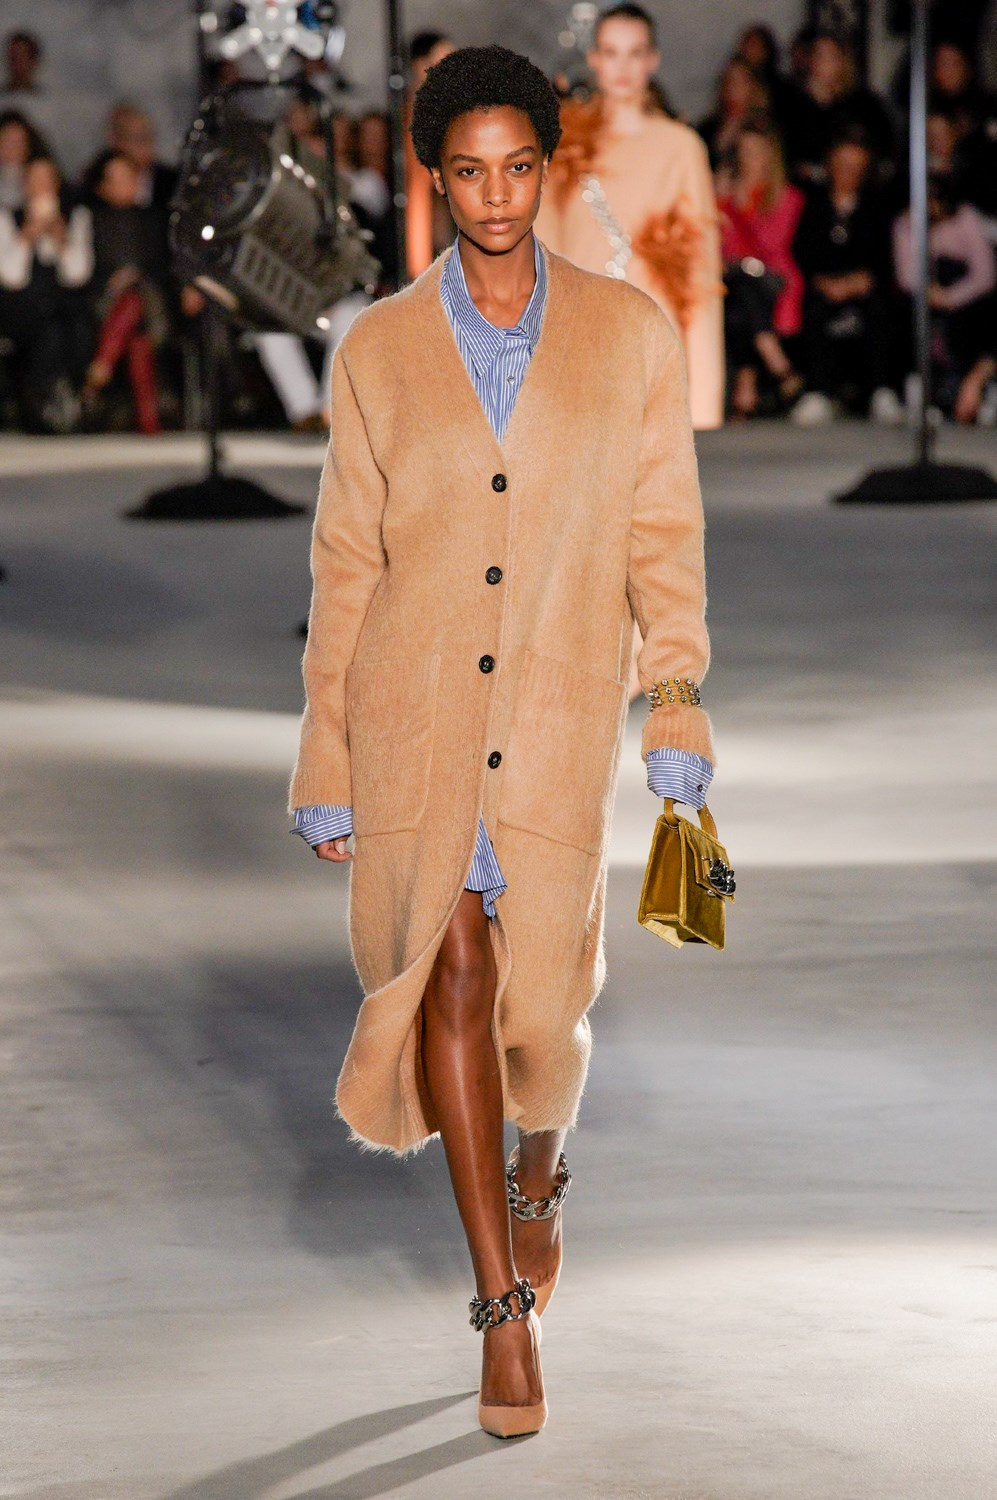 N 21 Fall 2020 Fashion Show Photos